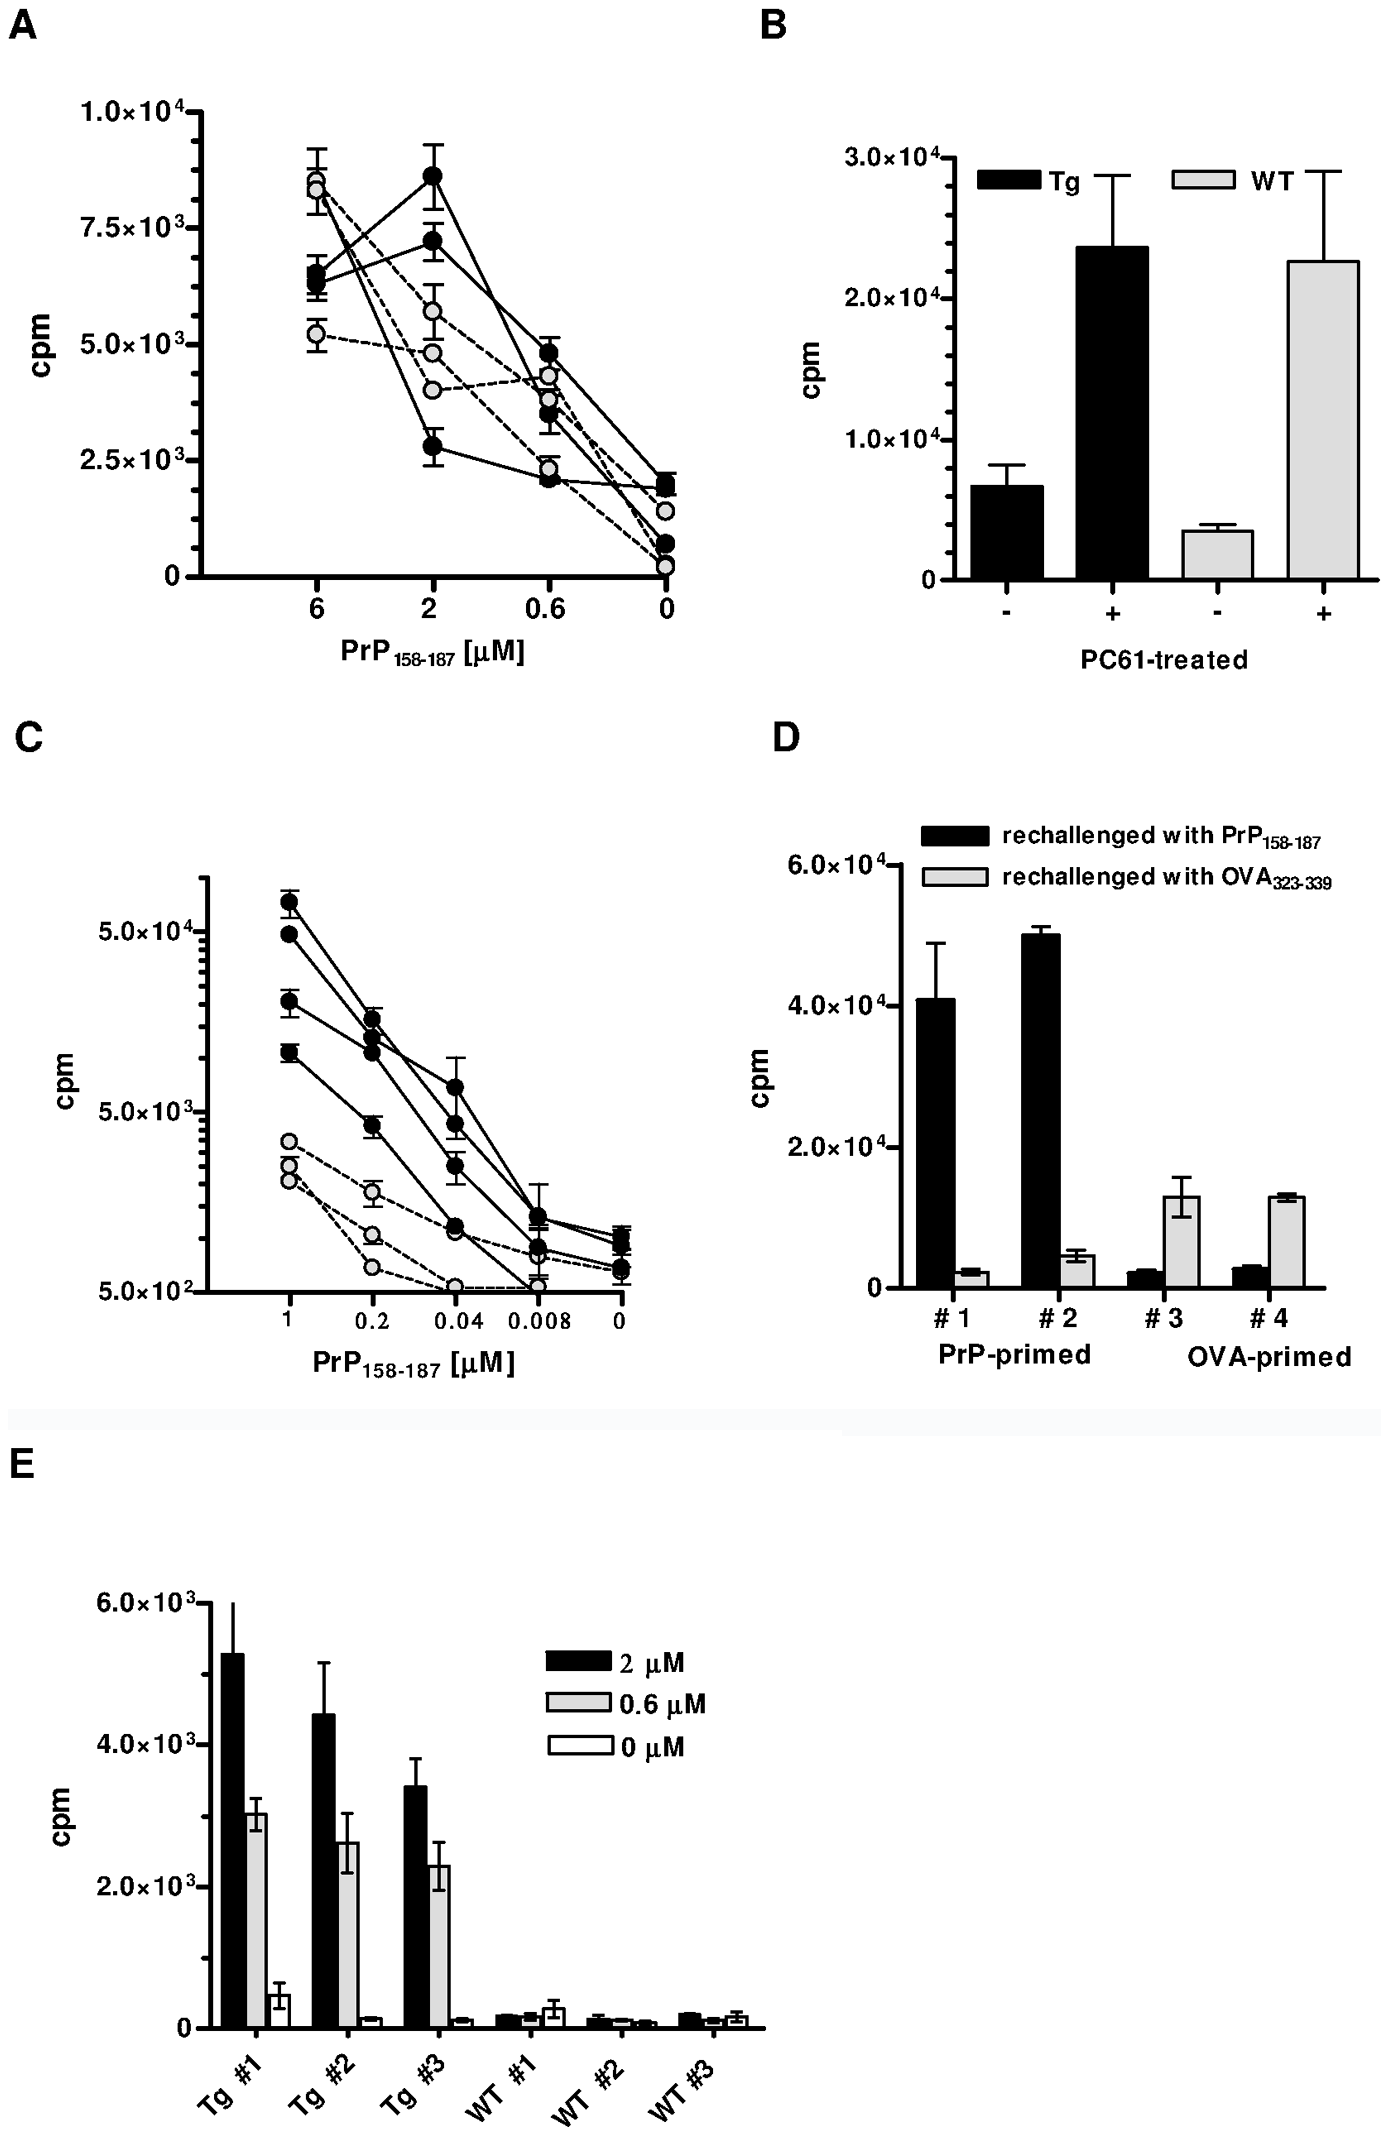 In vitro responses of CD4<sup>+</sup> T cells from PrP+ or PrP– Tg mice.